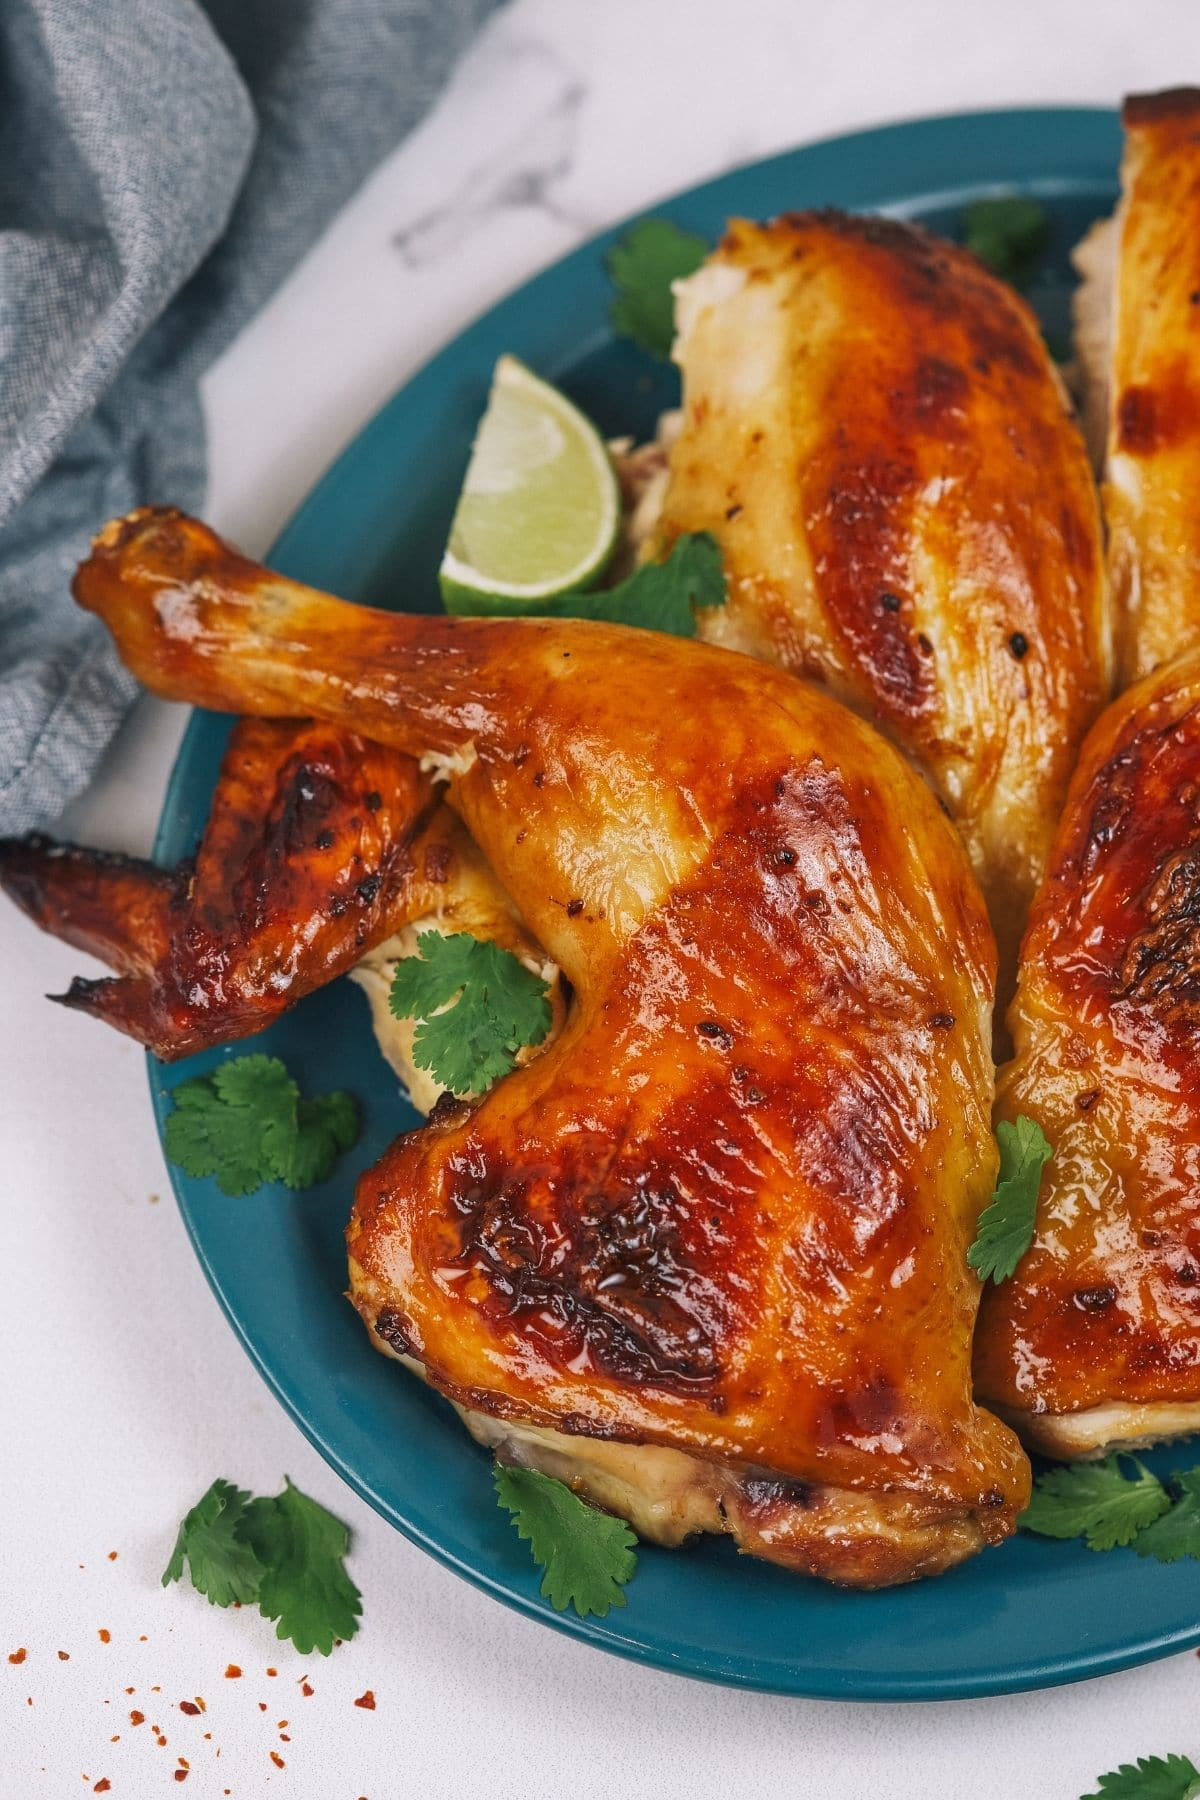 Teal plate of roasted chicken next to blue cloth napkin